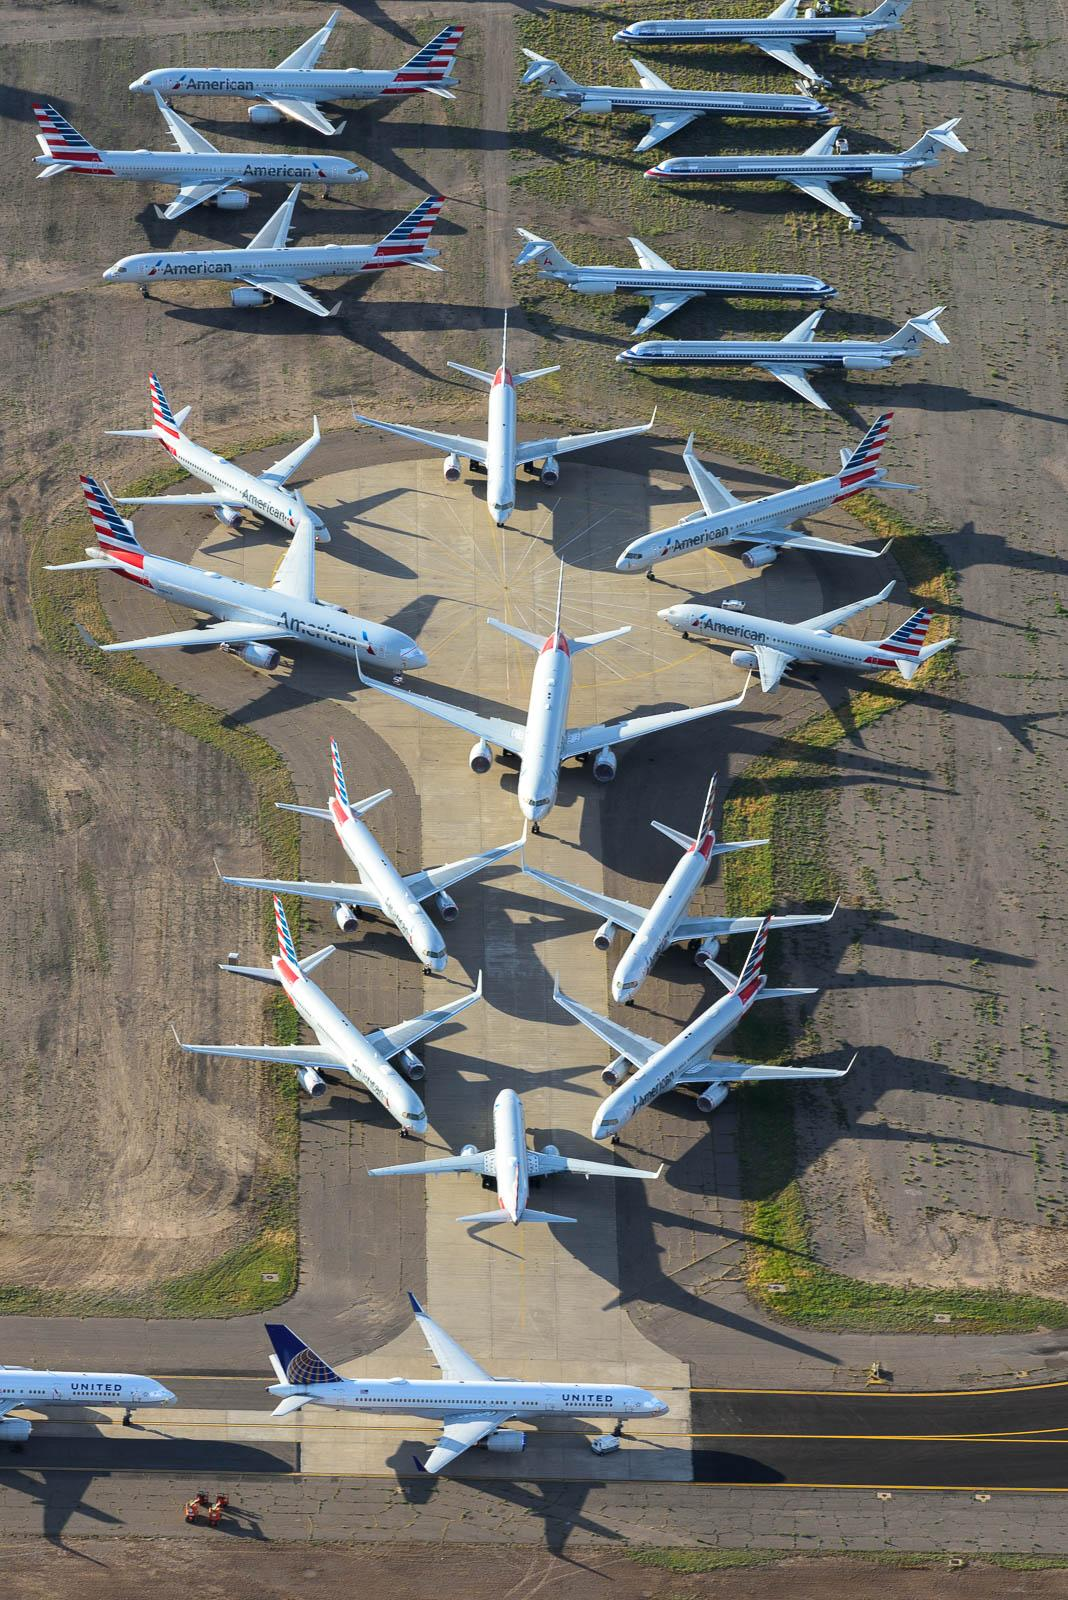 American Airlines parking at Roswell